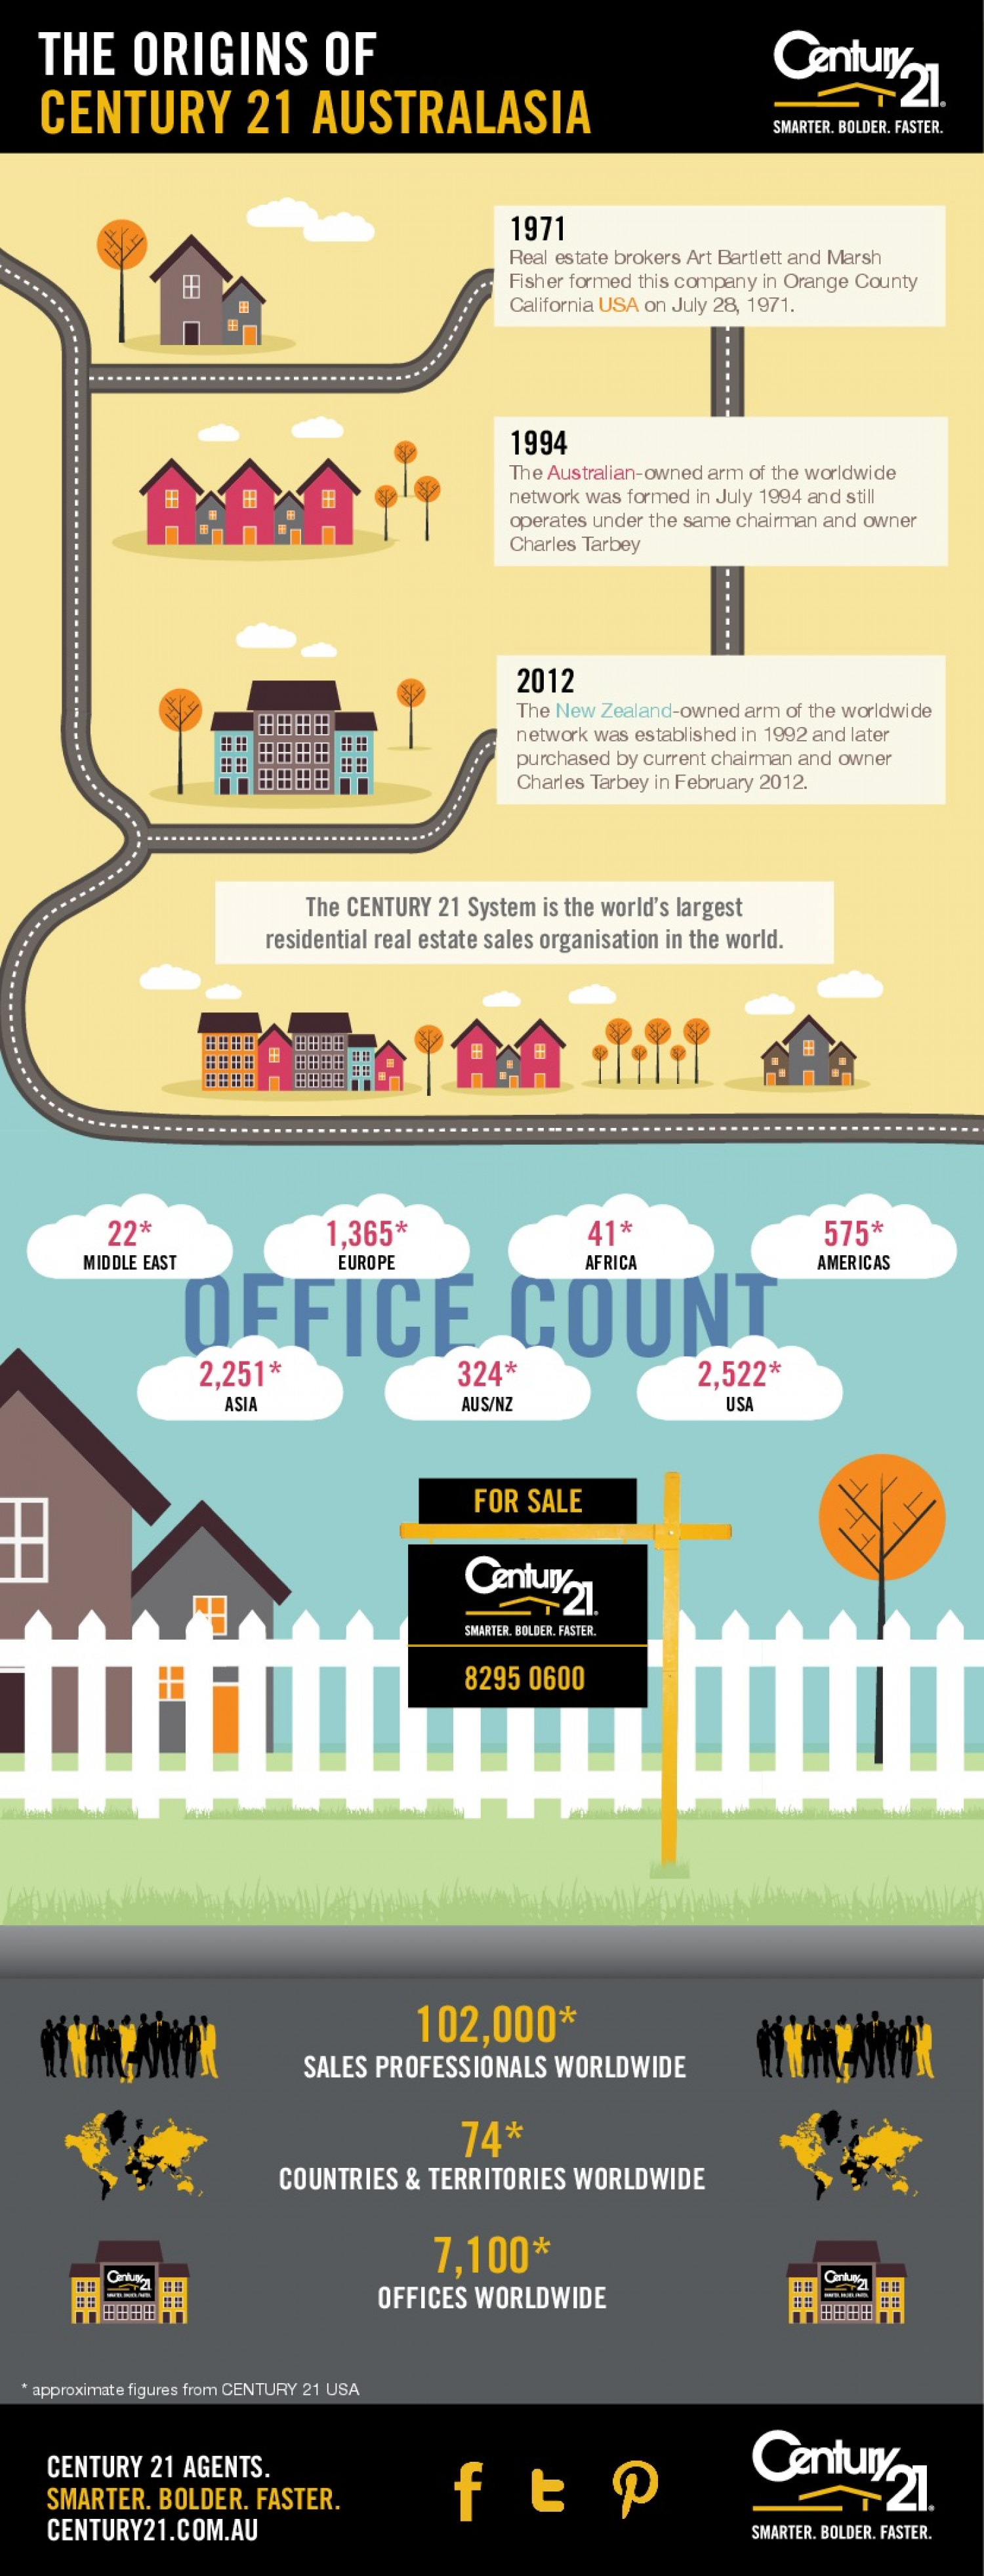 The Origins of Century 21 Australasia: A History Infographic